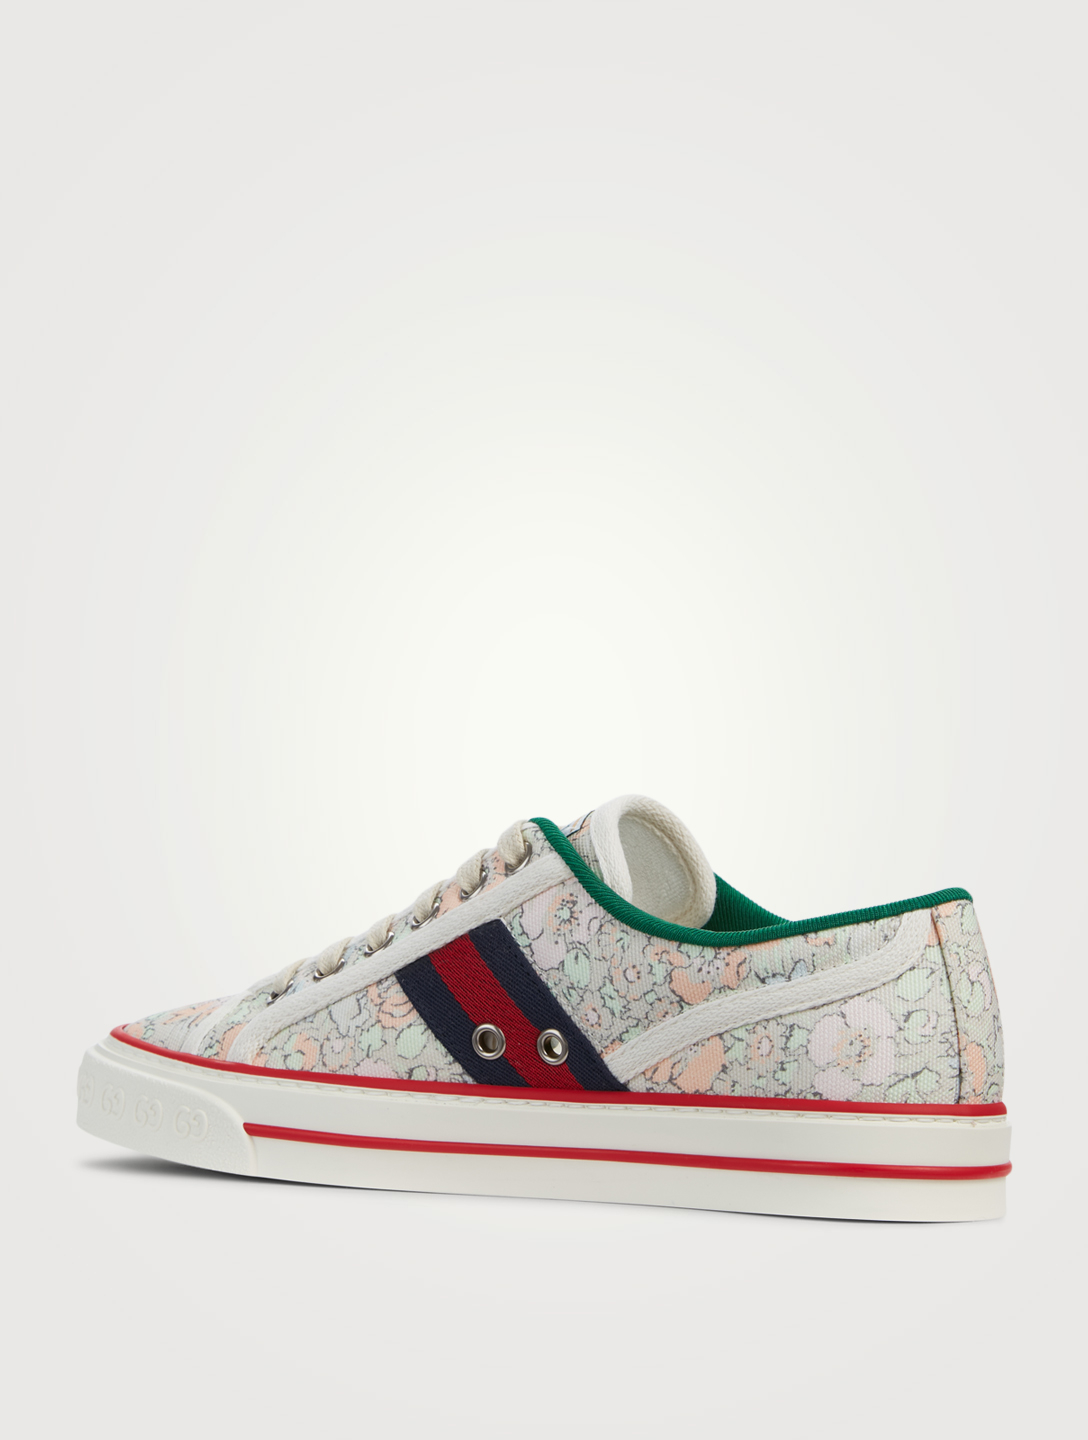 GUCCI Sneakers Tennis 1977 Liberty London en toile Femmes Bleu